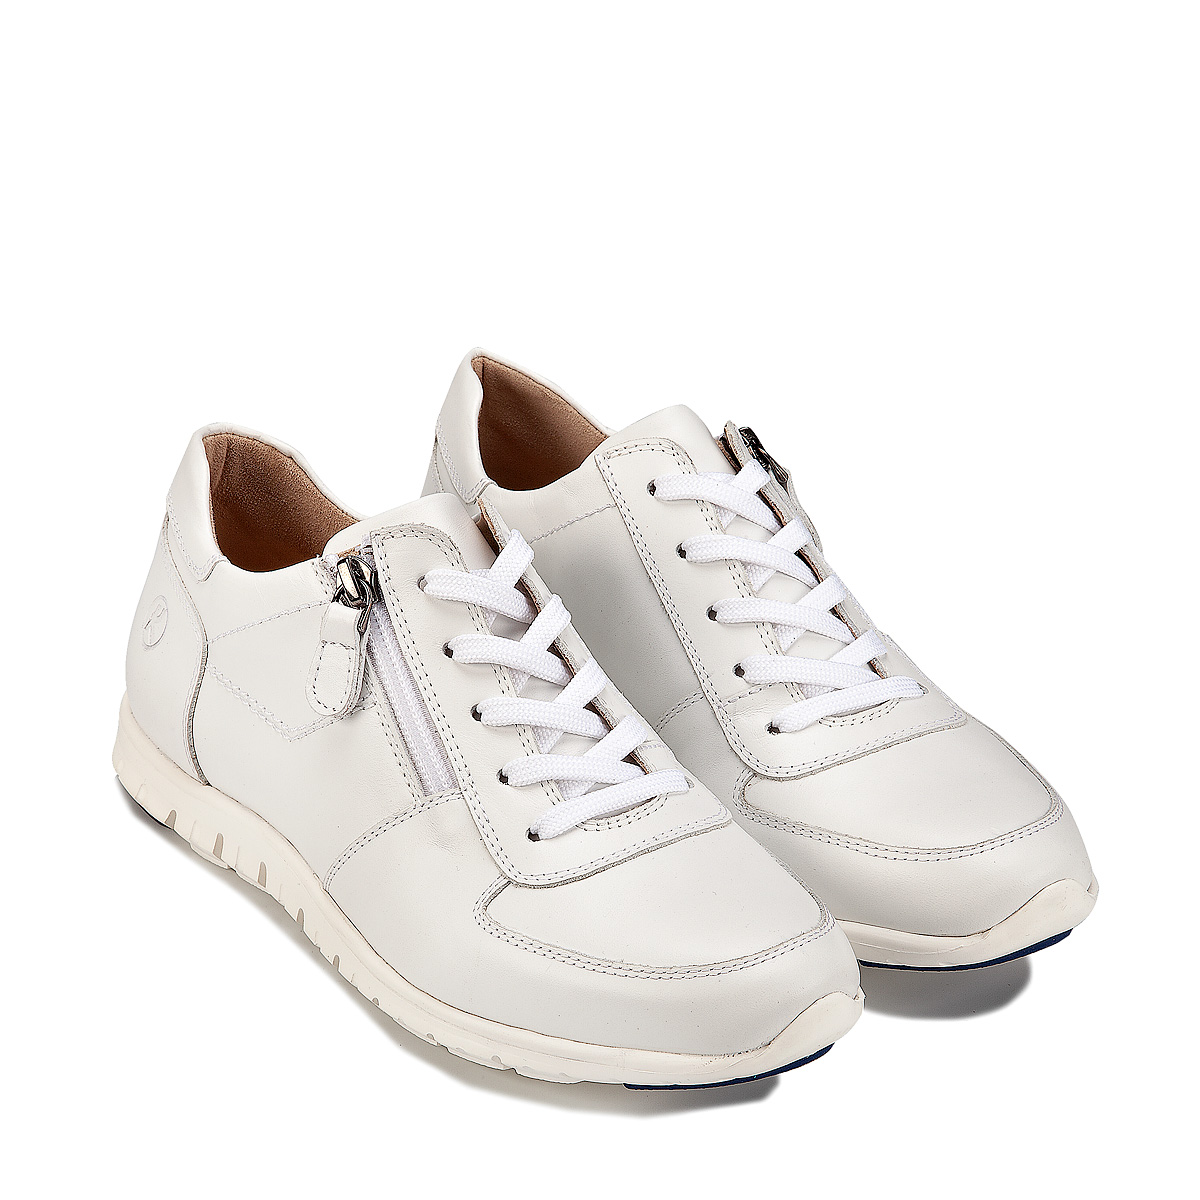 FLEXLIGHT ZIP SNEAKER